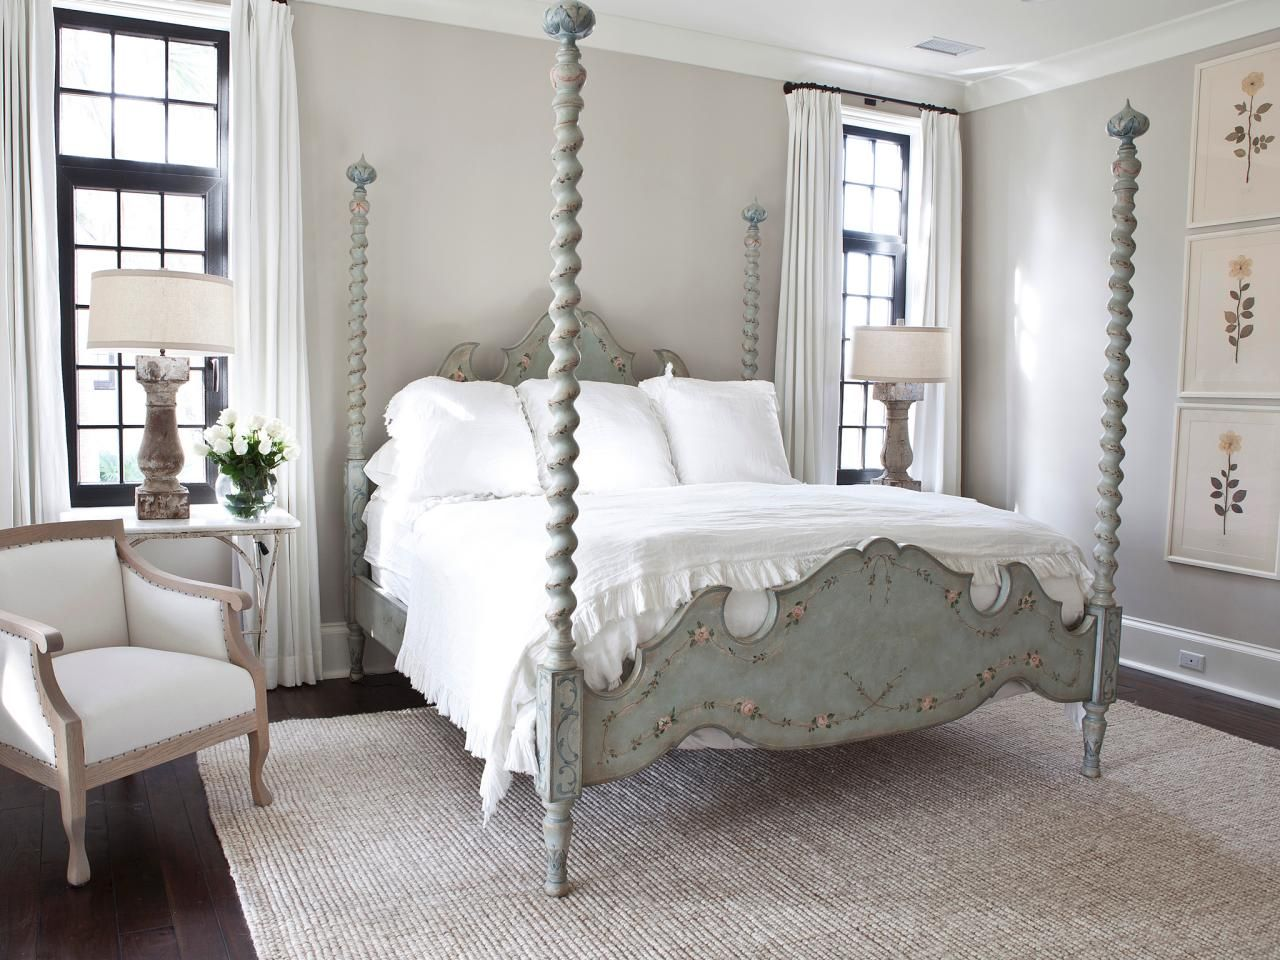 French country bedroom white - Muted Tones And Vintage Furnishings Give This French Country Bedroom A Timeless Look The Dark